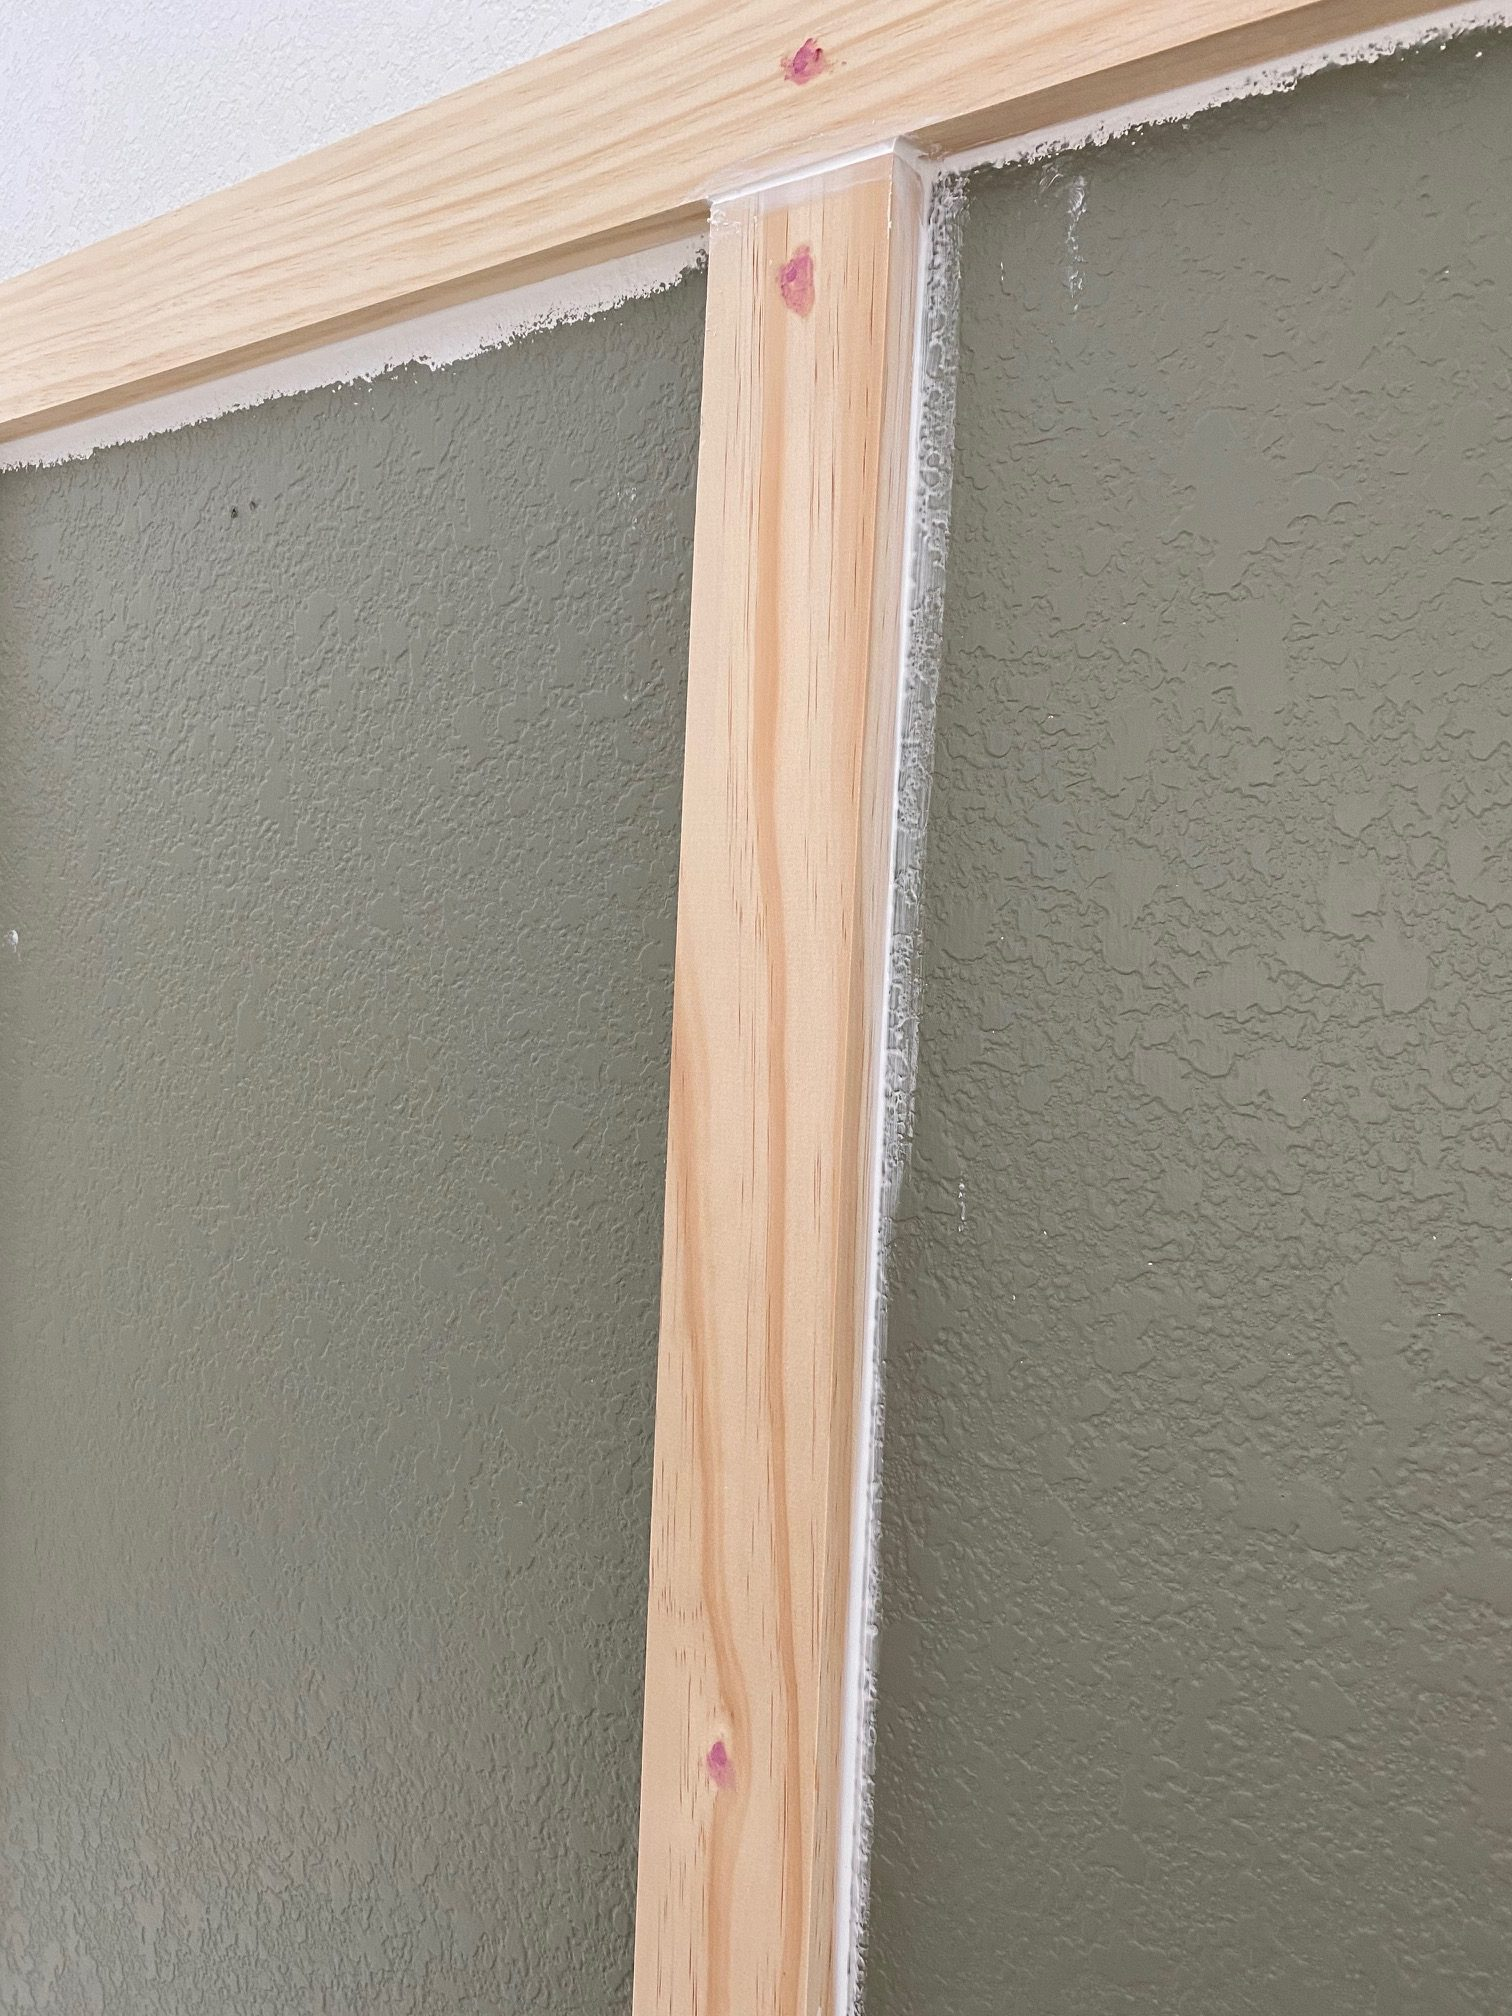 Board and Batten - A simple tutorial on how to DIY board and batten the easy way! Spackling the nail holes